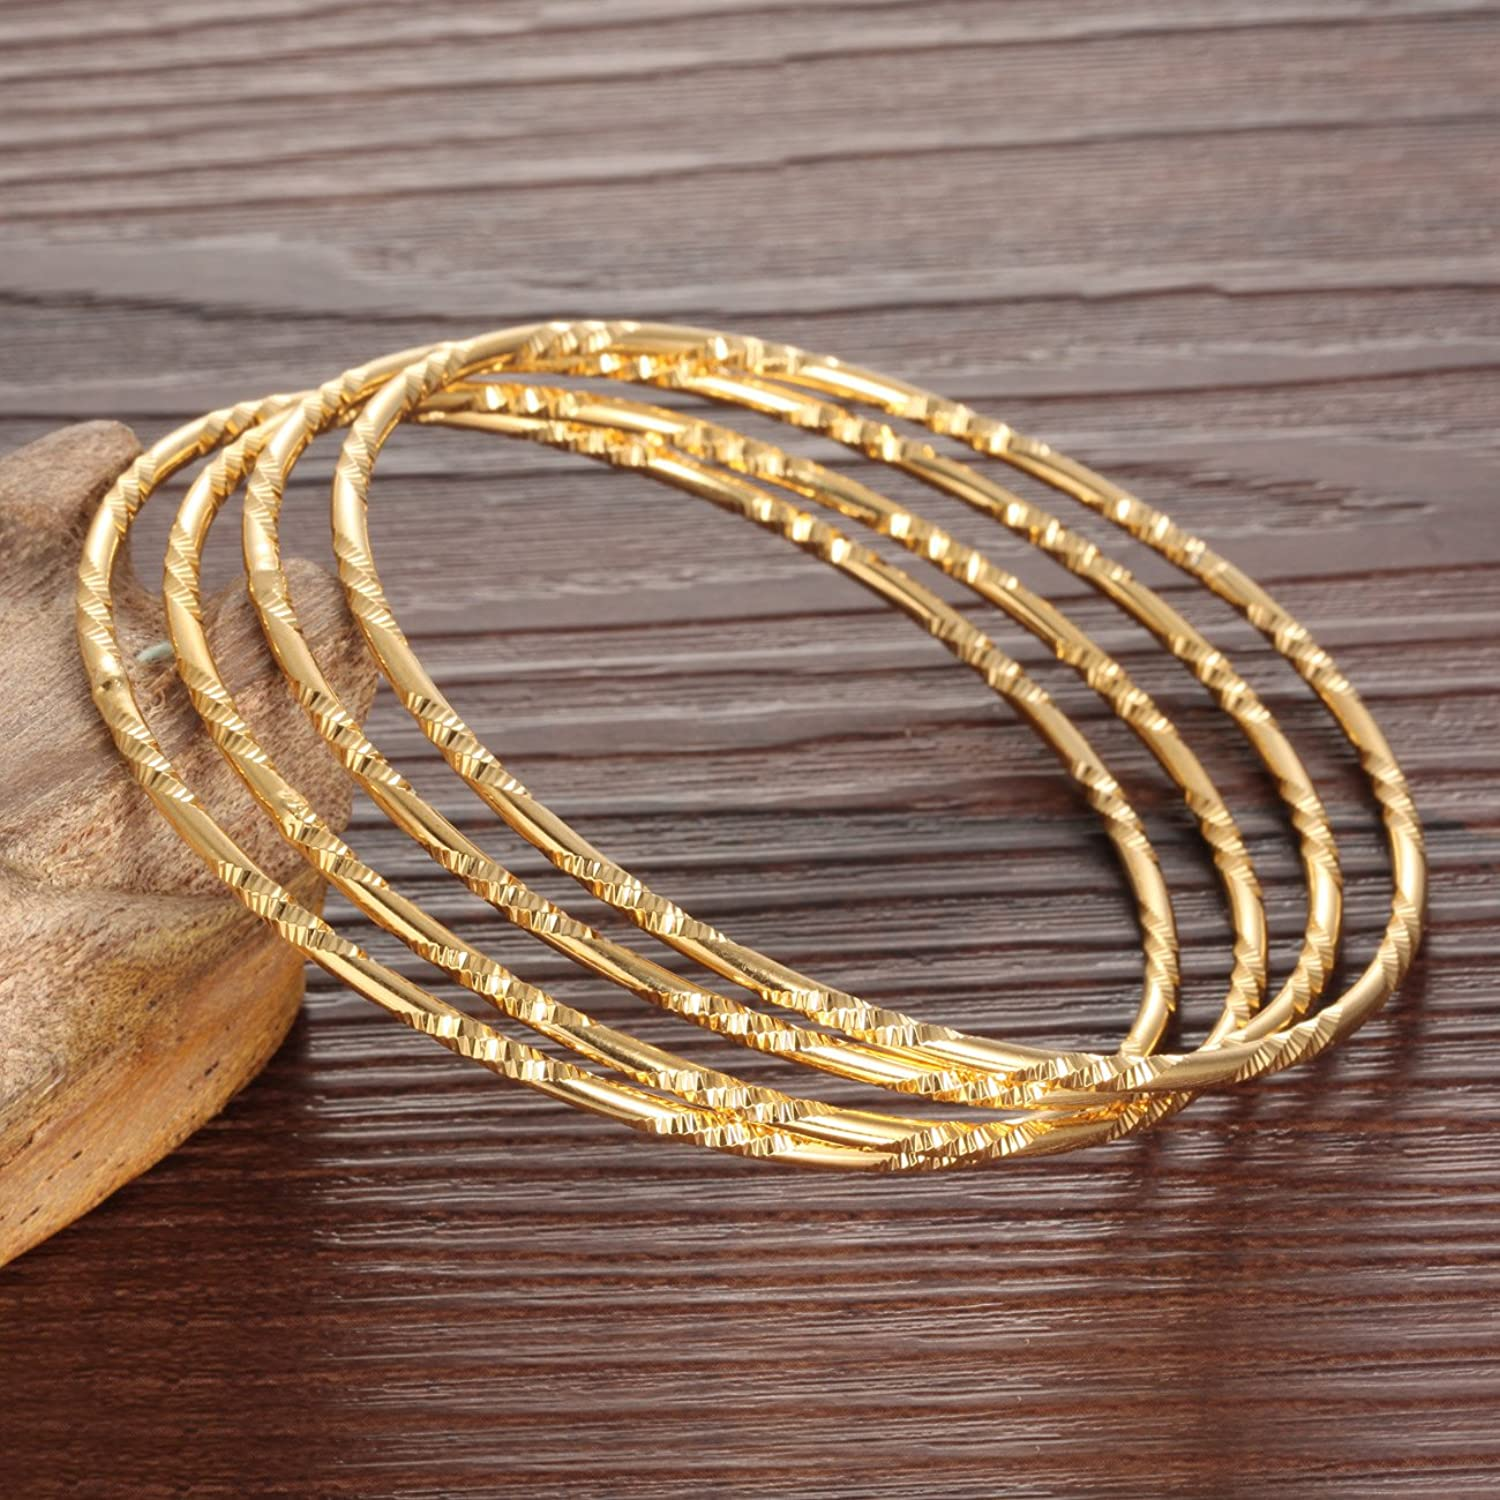 bracelets bracelet women at for z j diamond cartier bangle bangles org id gold jewelry trinity